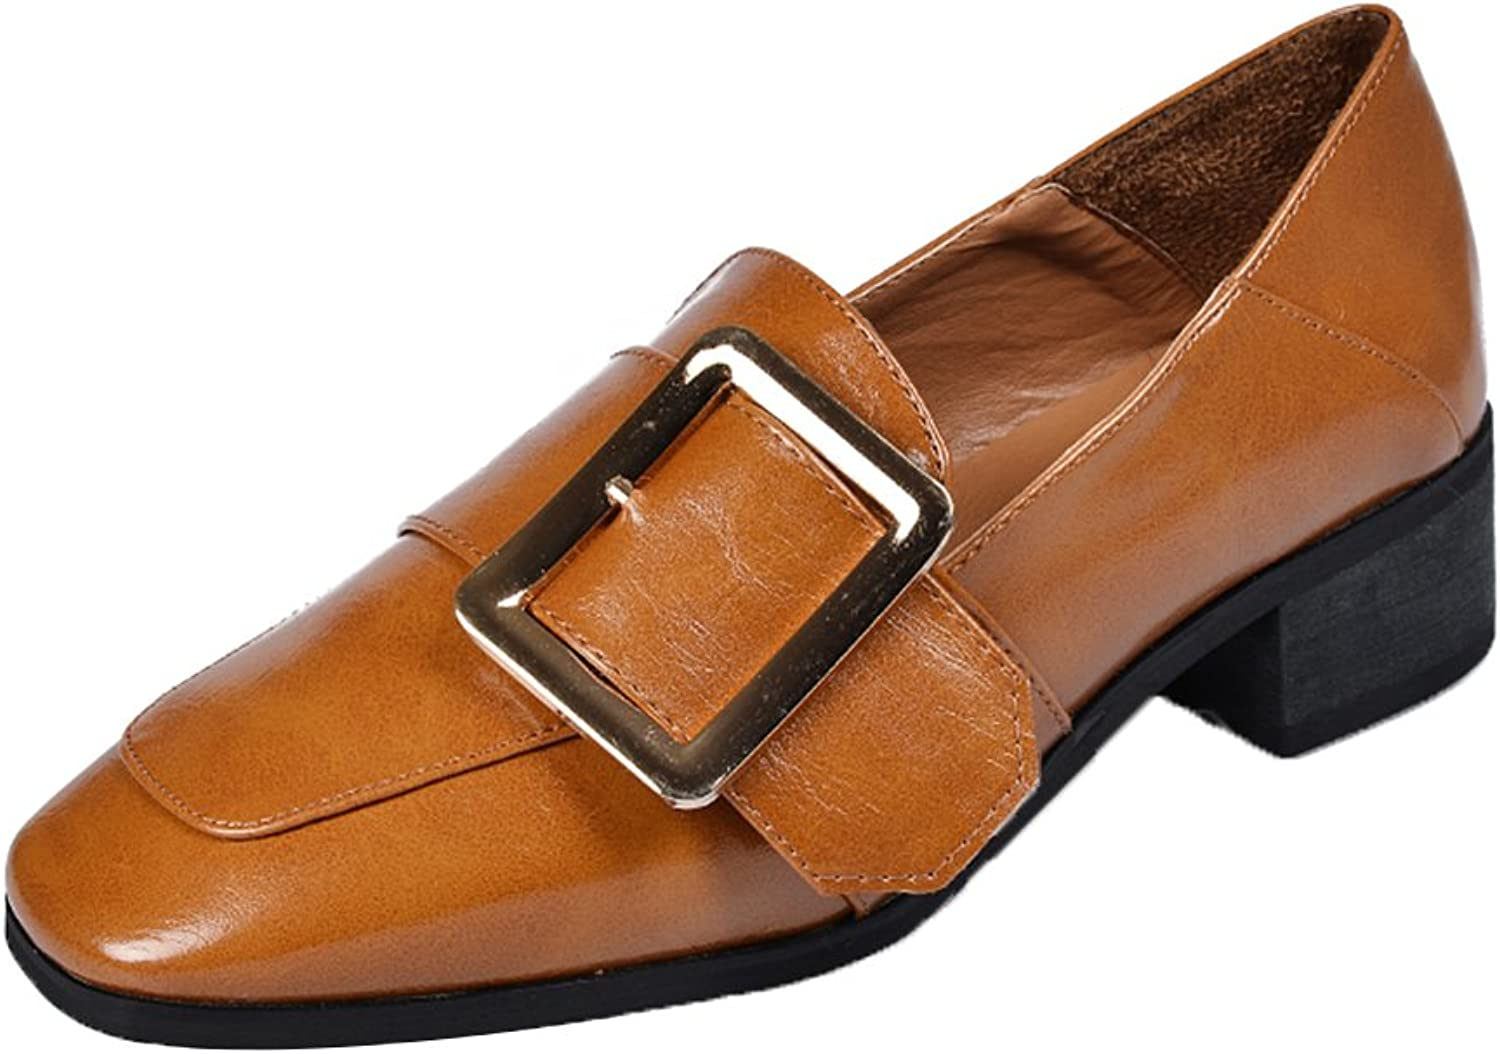 Kyle Walsh Pa Women British Retro Buckle Slip-On Chunky Heel Loafer shoes